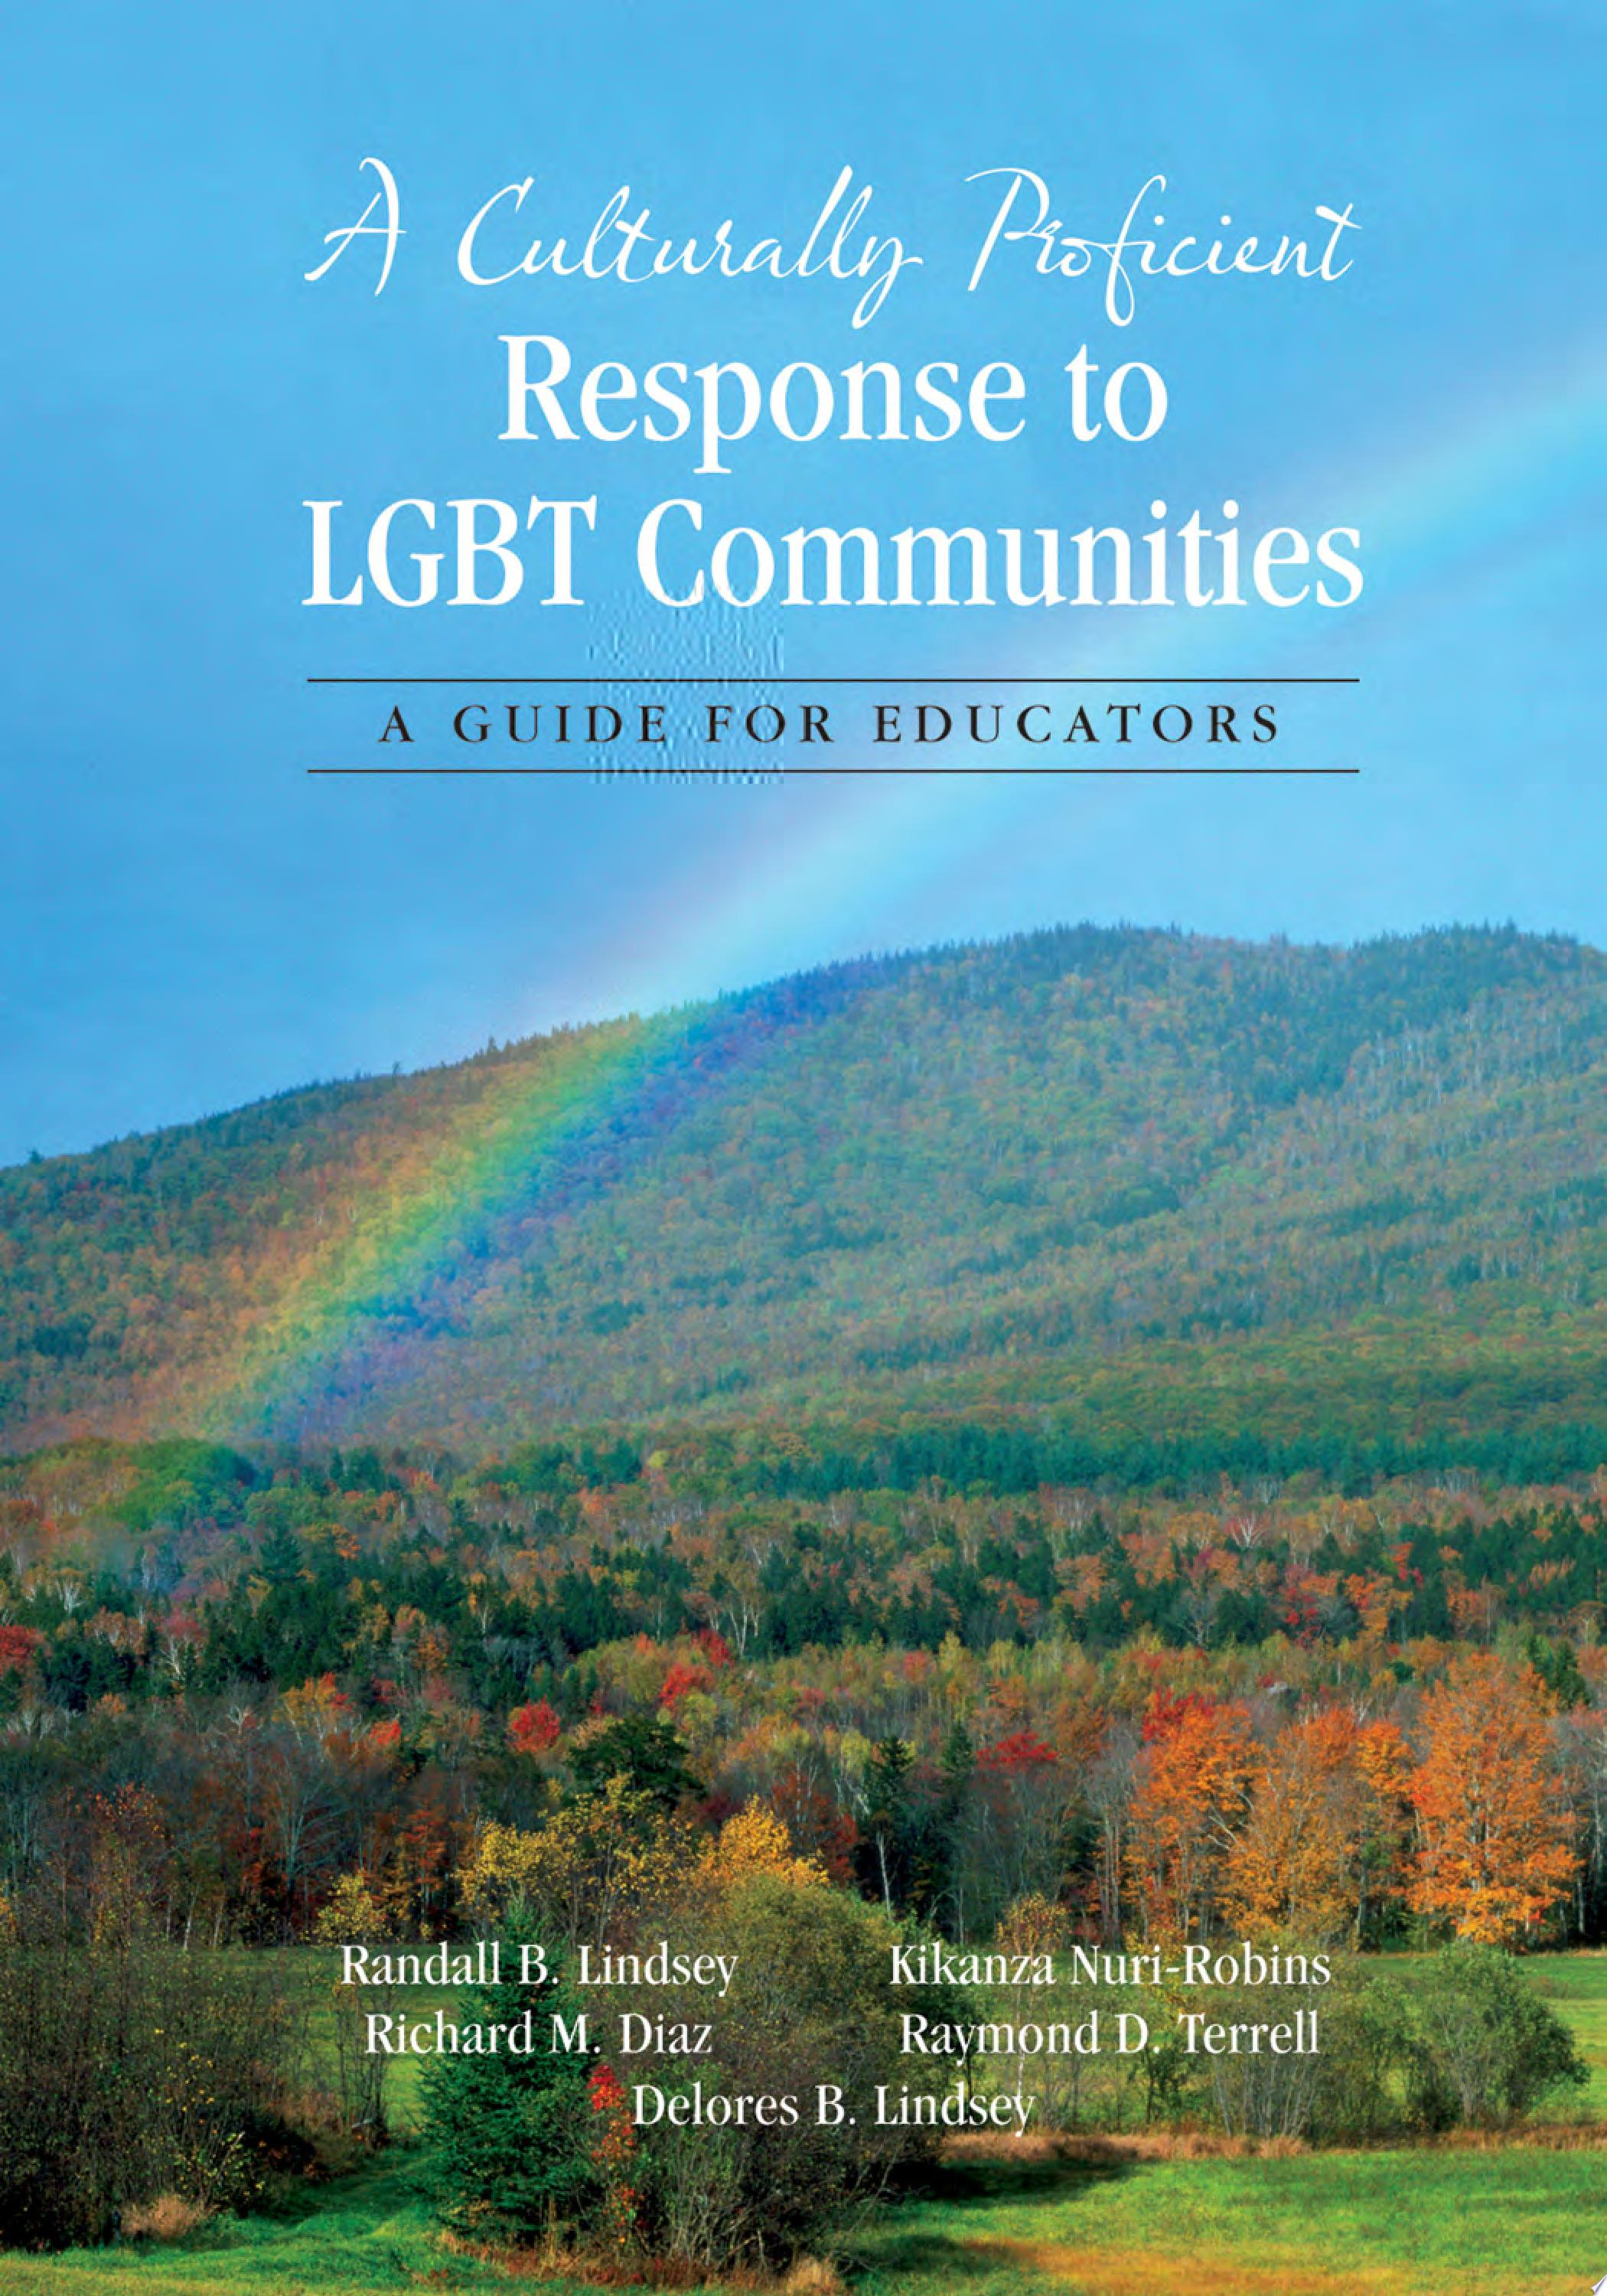 A Culturally Proficient Response to LGBT Communities